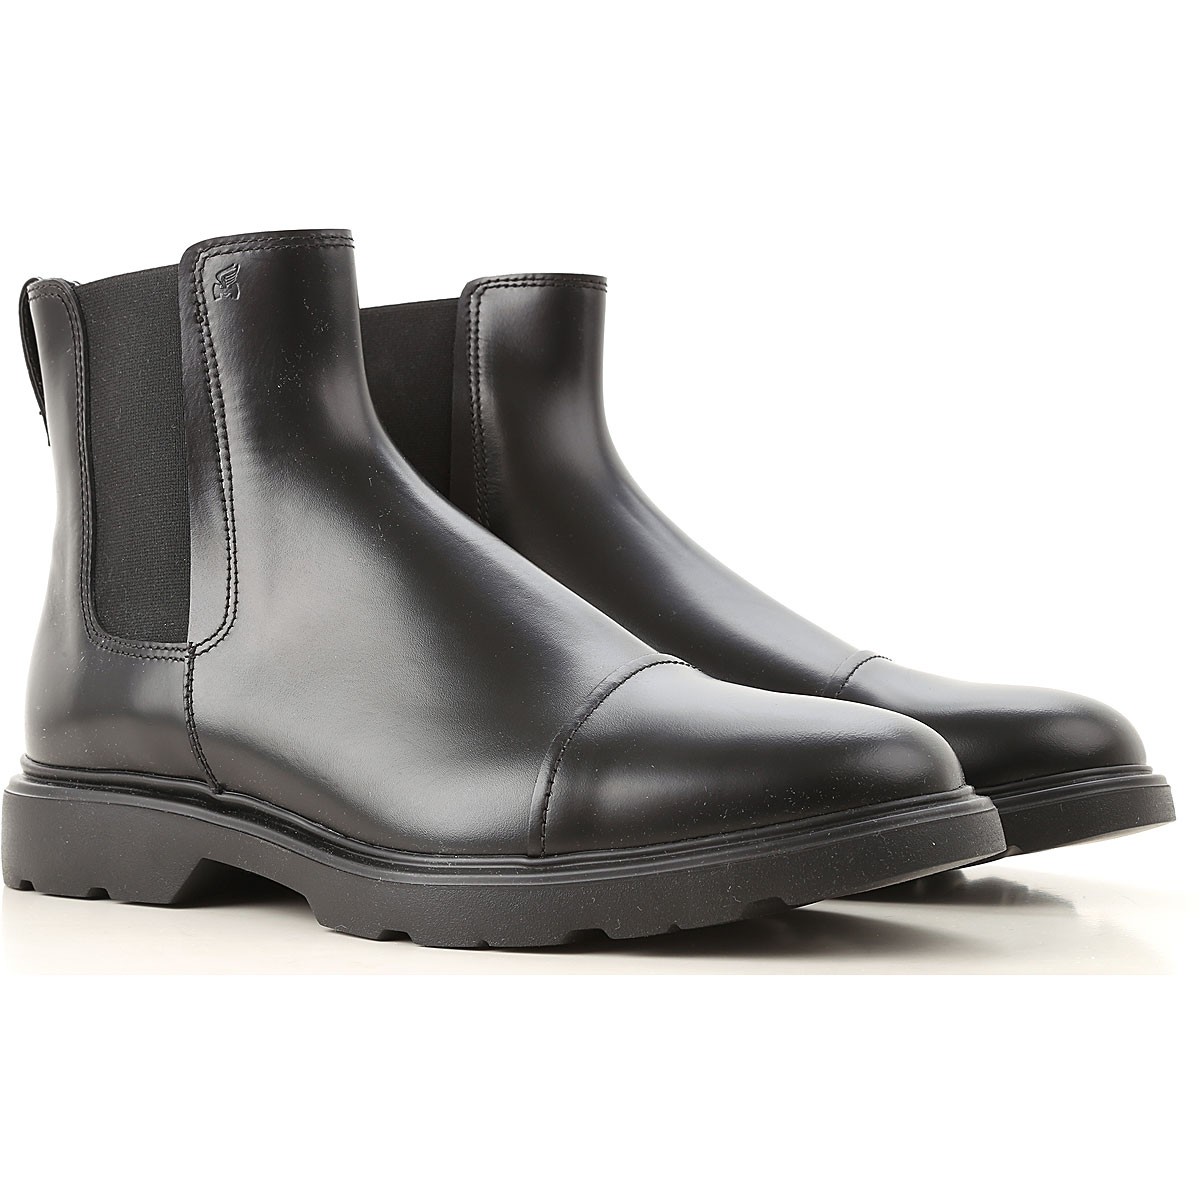 Image of Hogan Boots for Men, Booties, Black, Leather, 2017, 10 11 7.5 8 8.5 9 9.5